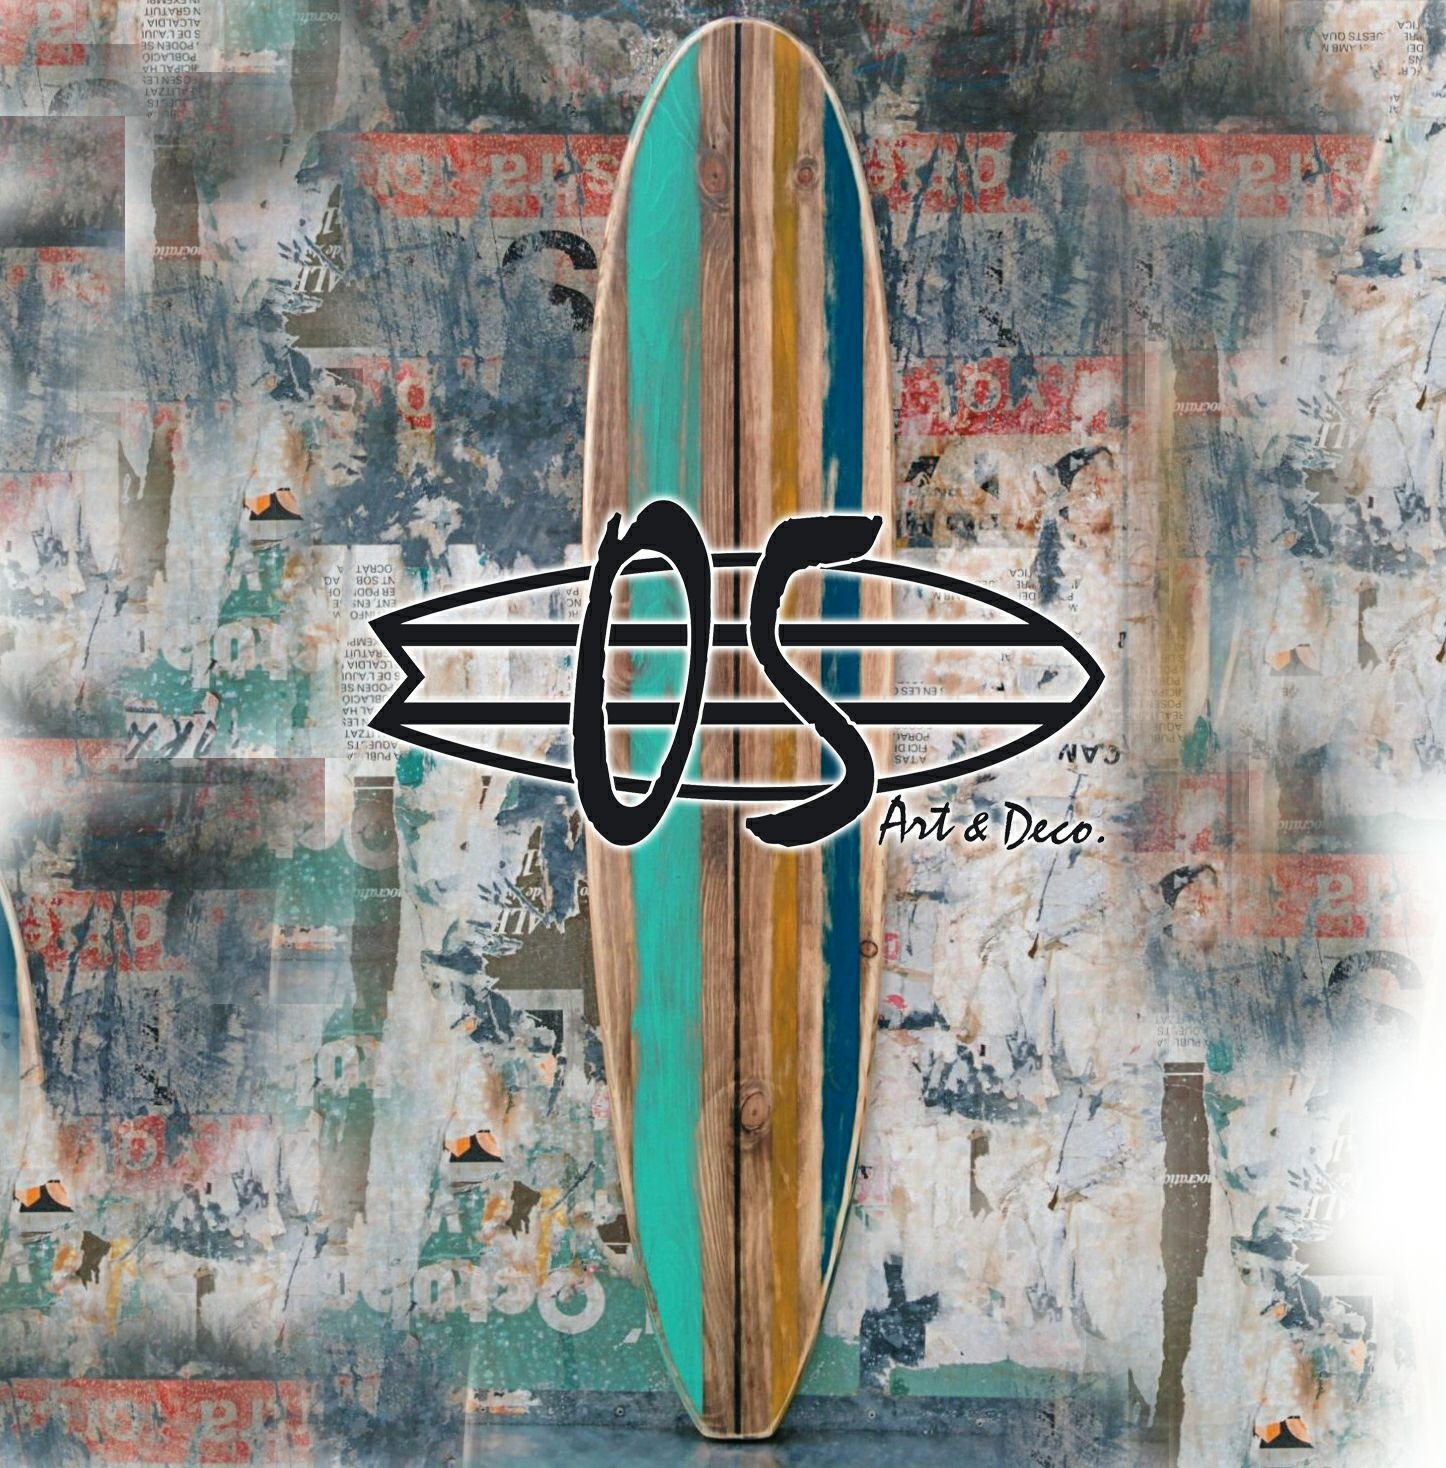 TABLA SURF DE DECORACIÓN LONGBOARD ORIGINAL VINTAGE DE PARED: Amazon.es: Hogar